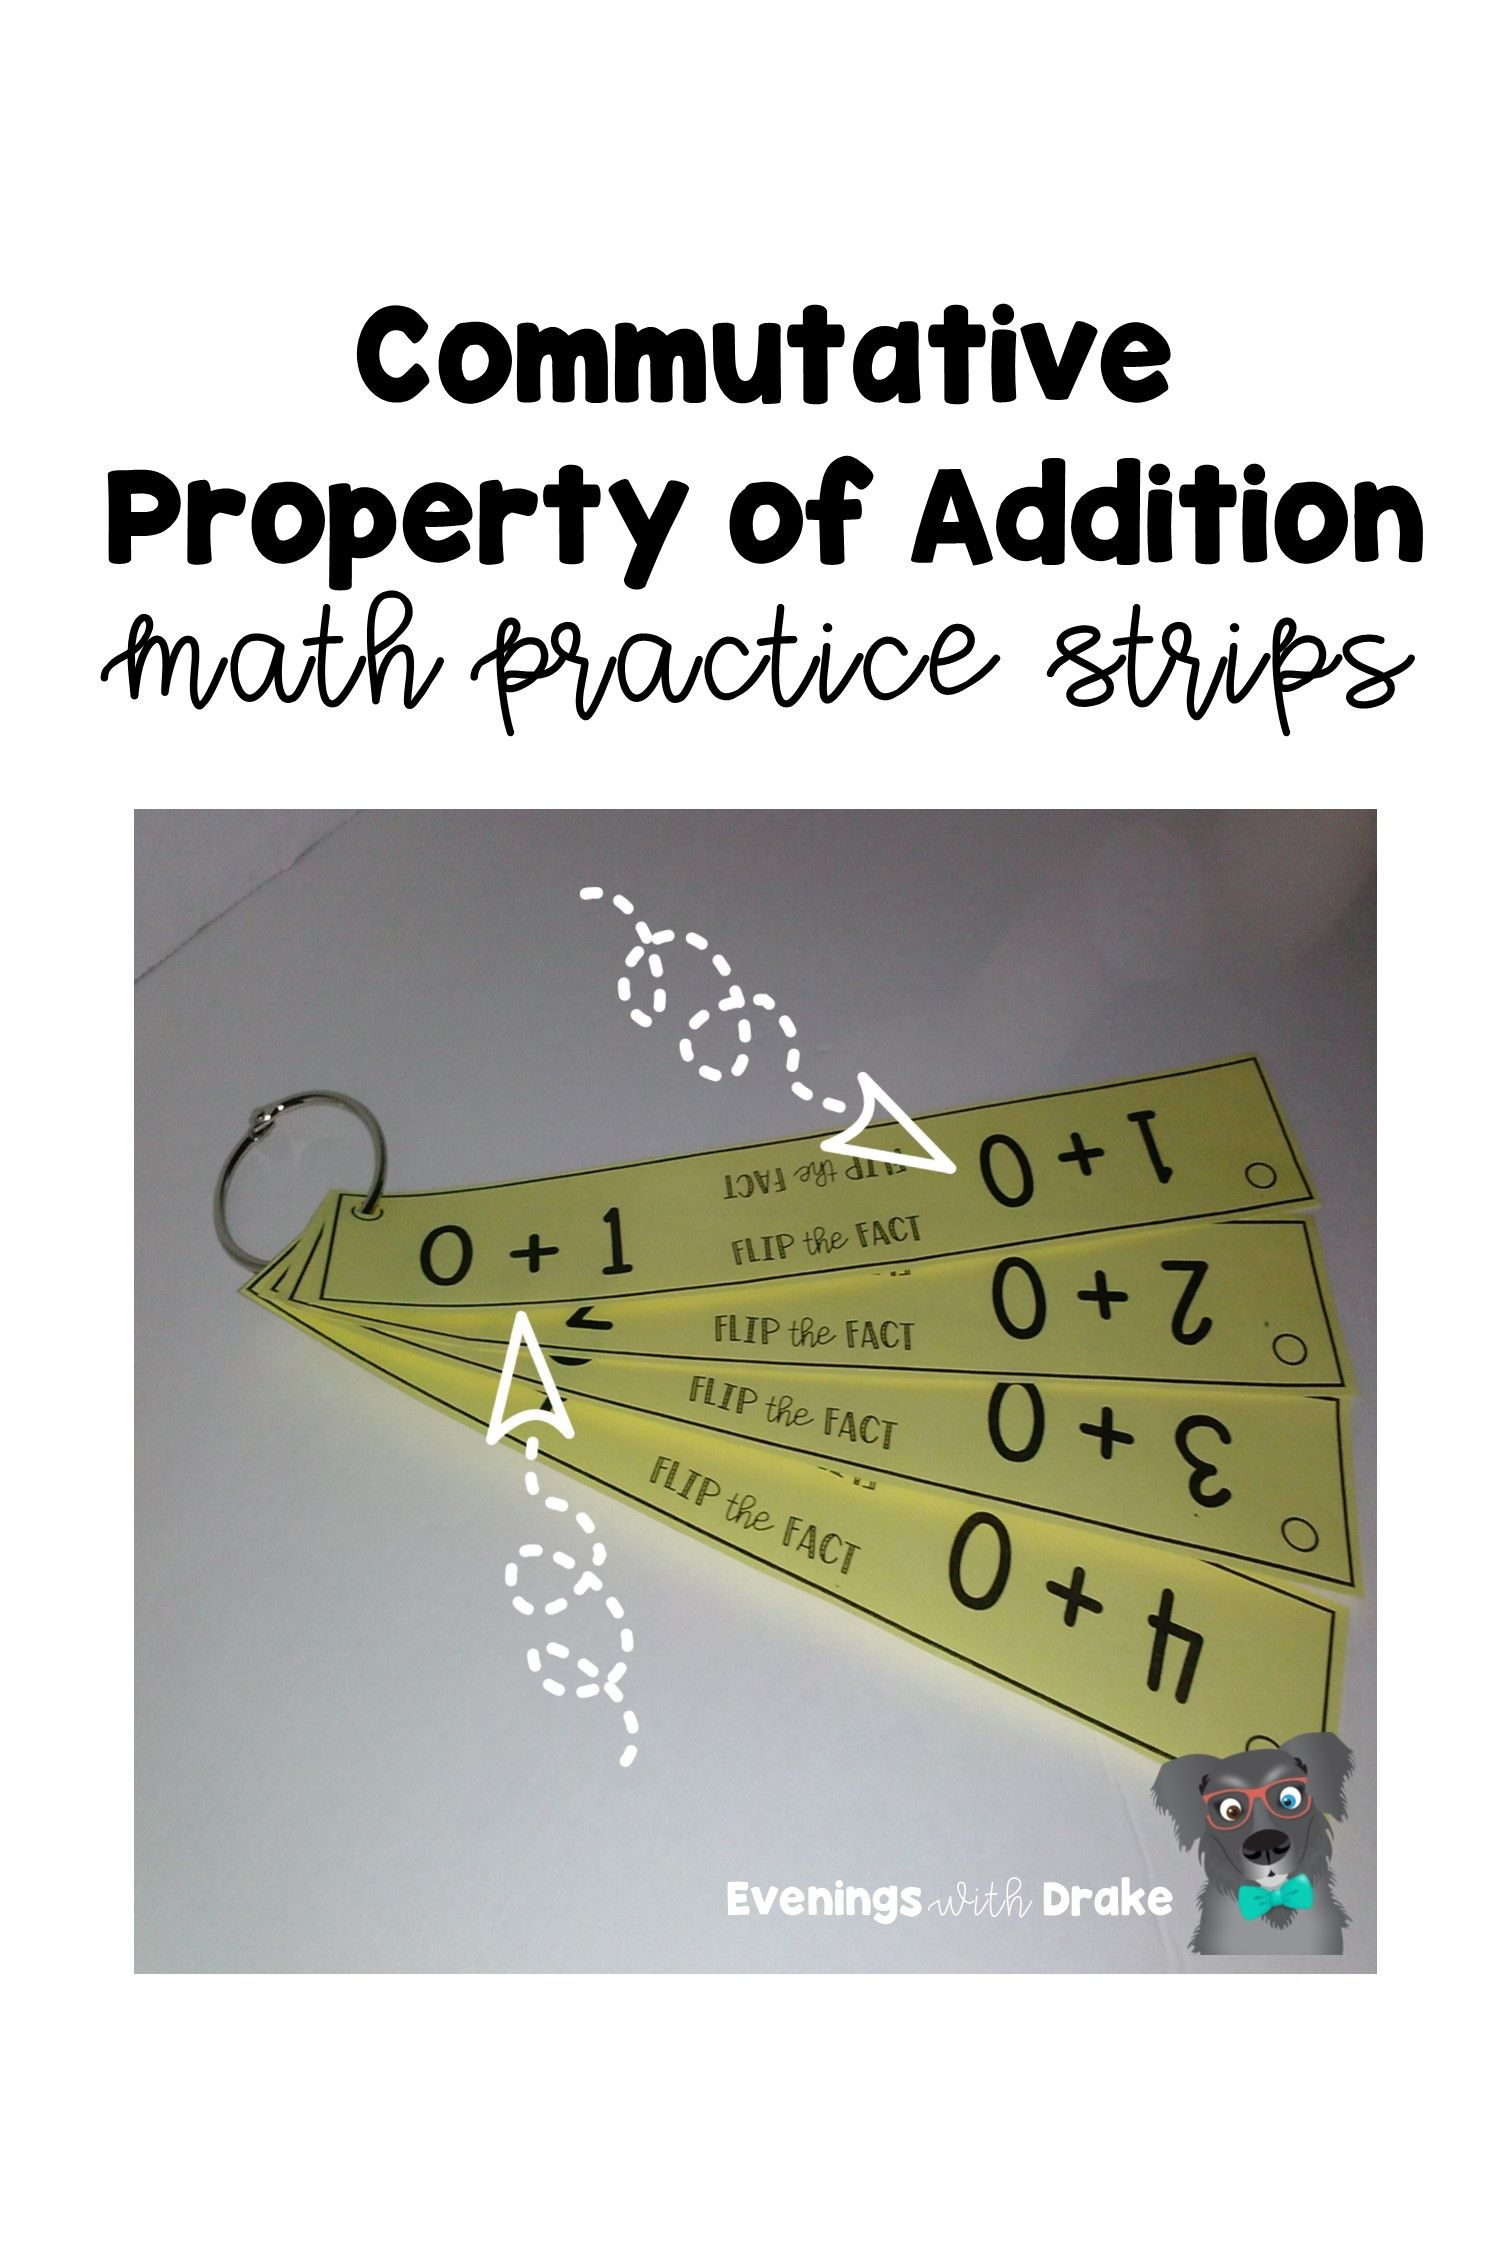 Commutative Property Of Addition Math Strips